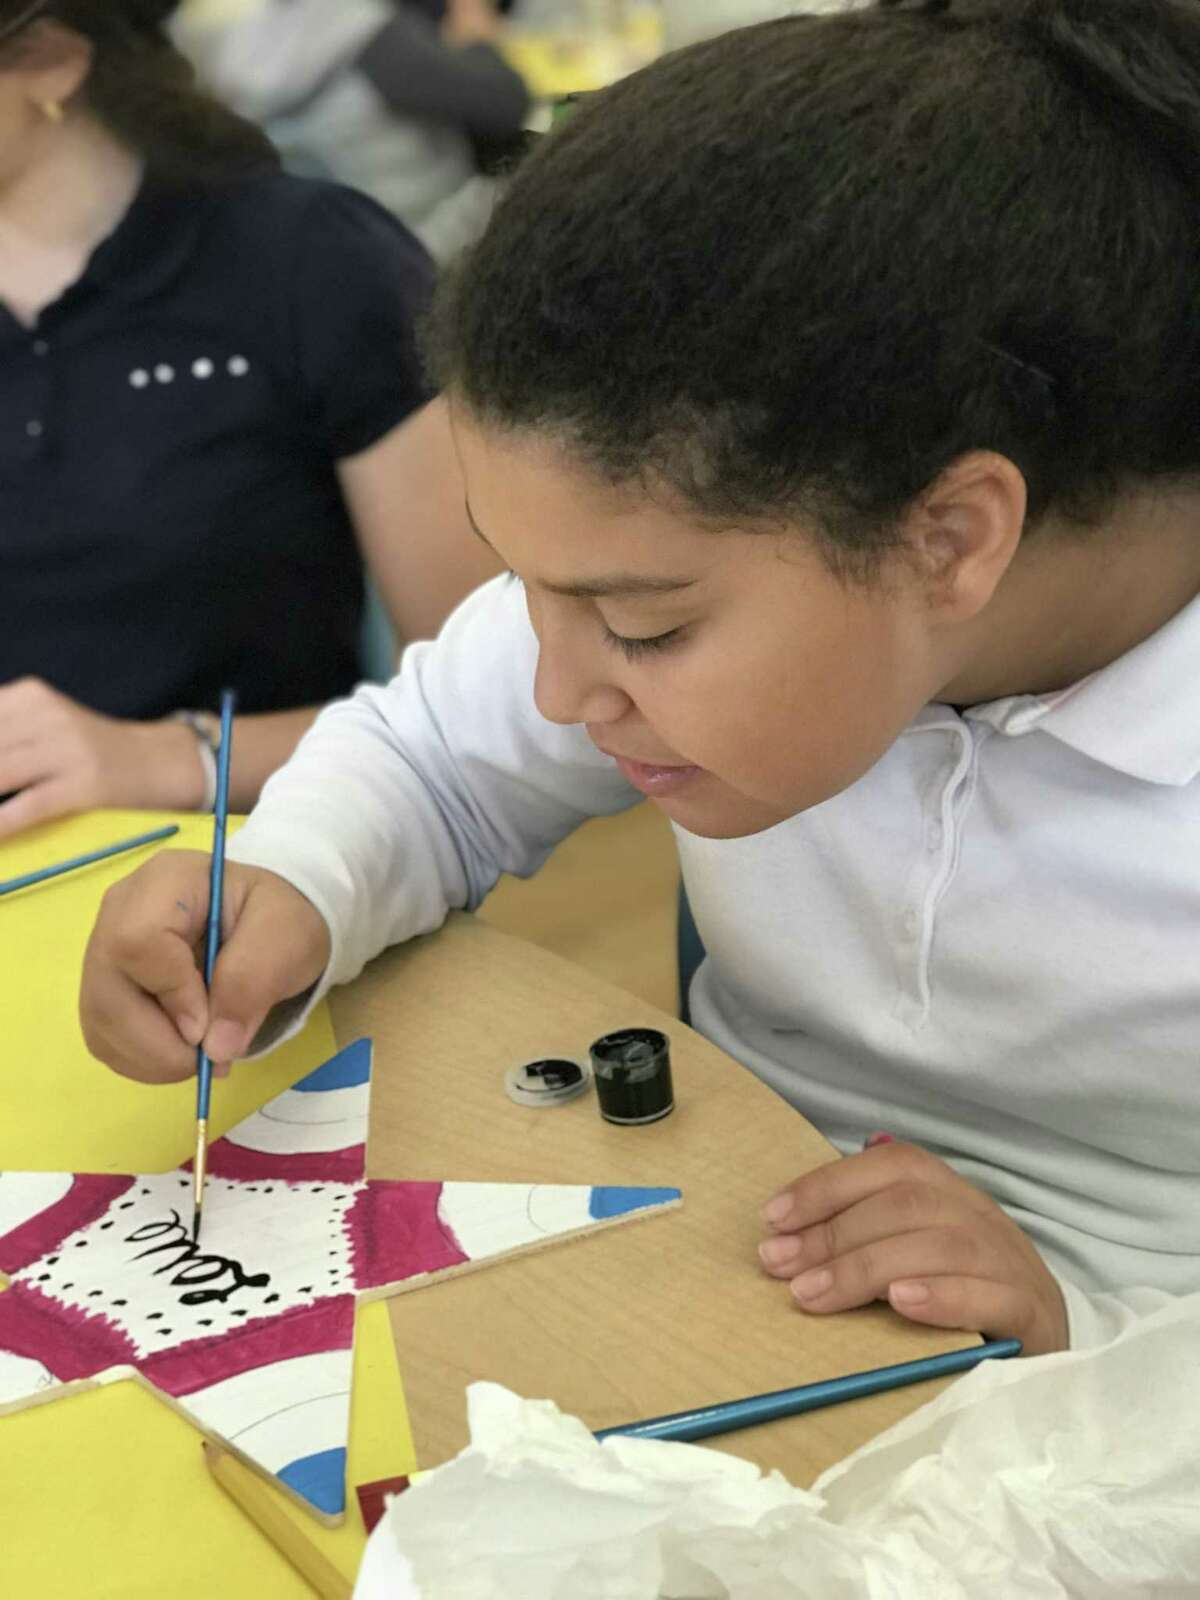 Students at the Bi-Cultural Hebrew Academy in Stamford, Conn. made Stars of Hope on Oct. 29, 2018 to send to Pittsburgh, PA where 11 people were killed in the midst of a service at a temple in what's considered to be the deadliest attack on people in the Jewish community in United States history.